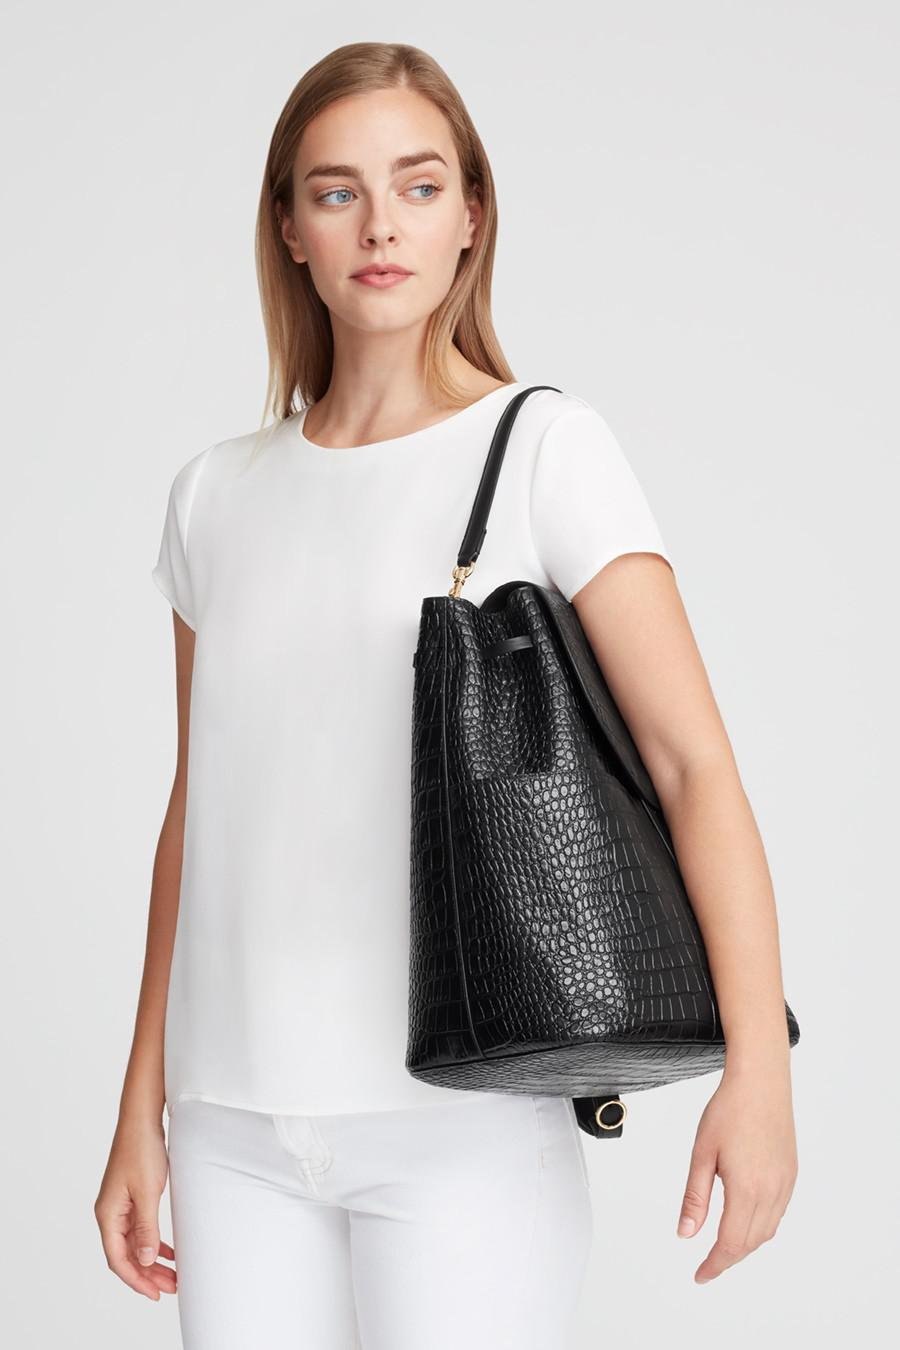 Women's Large Leather Backpack in Textured Black | Croc-Embossed by Cuyana 7